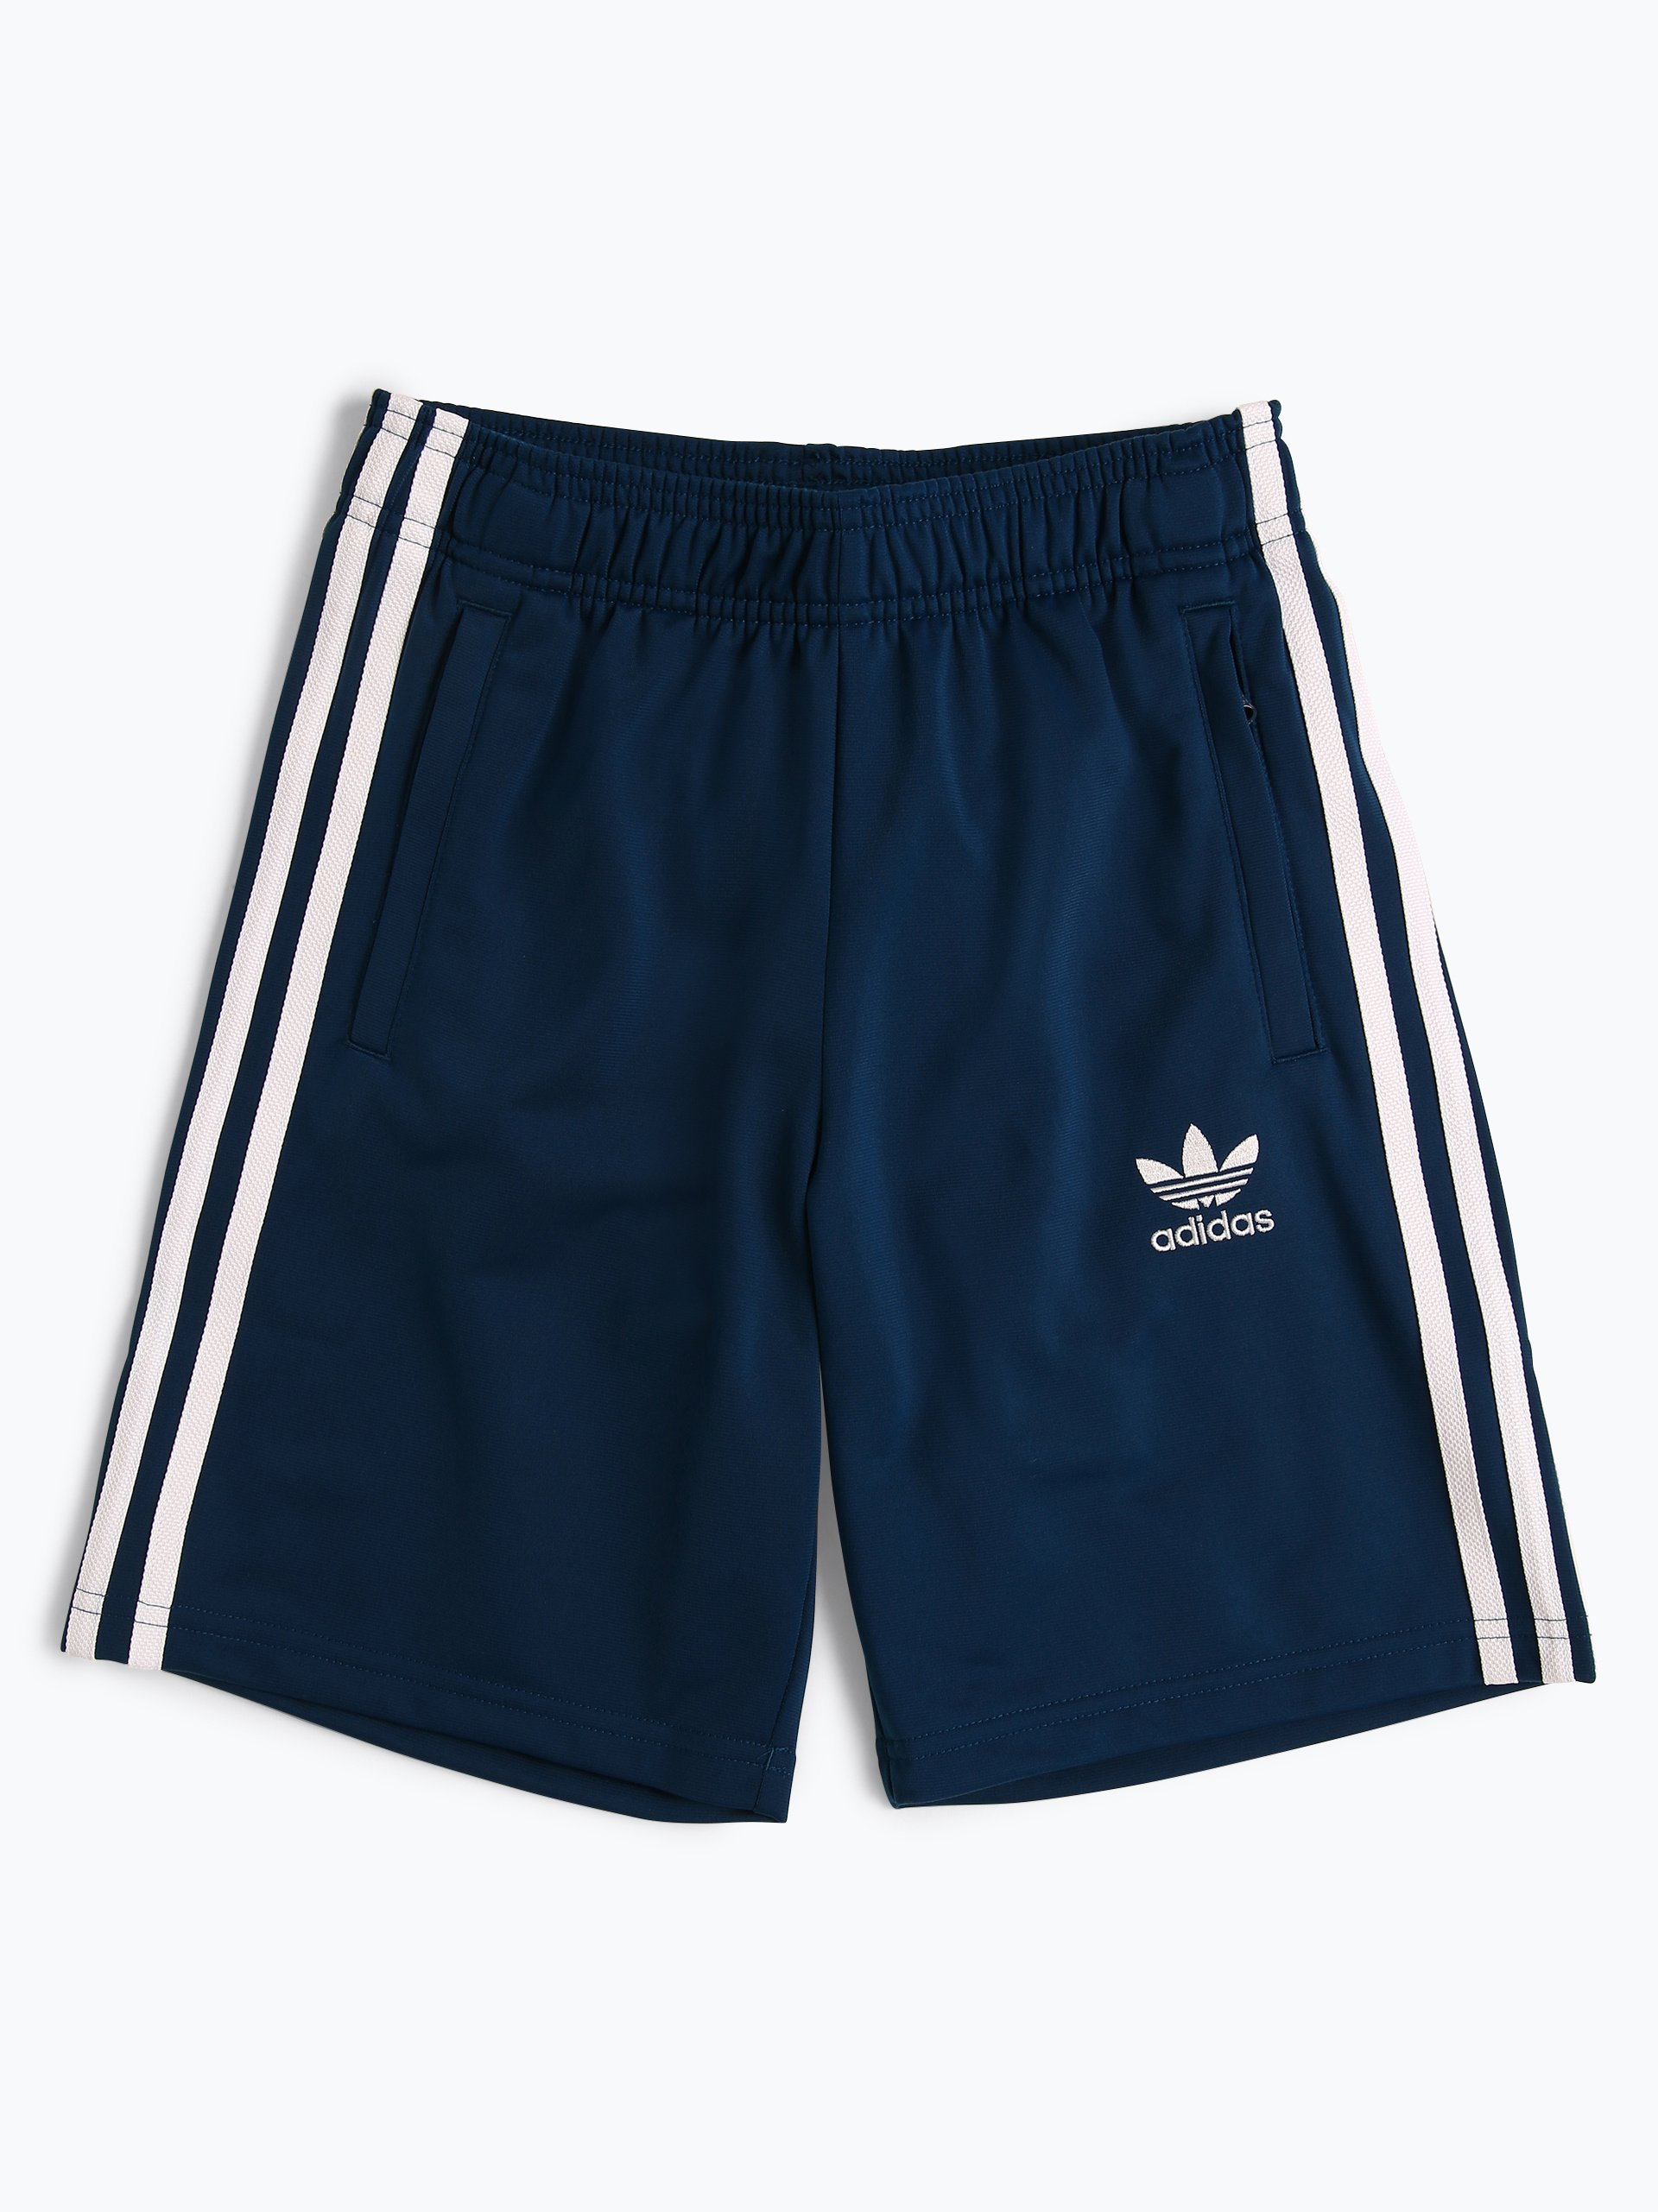 adidas Originals Jungen Shorts